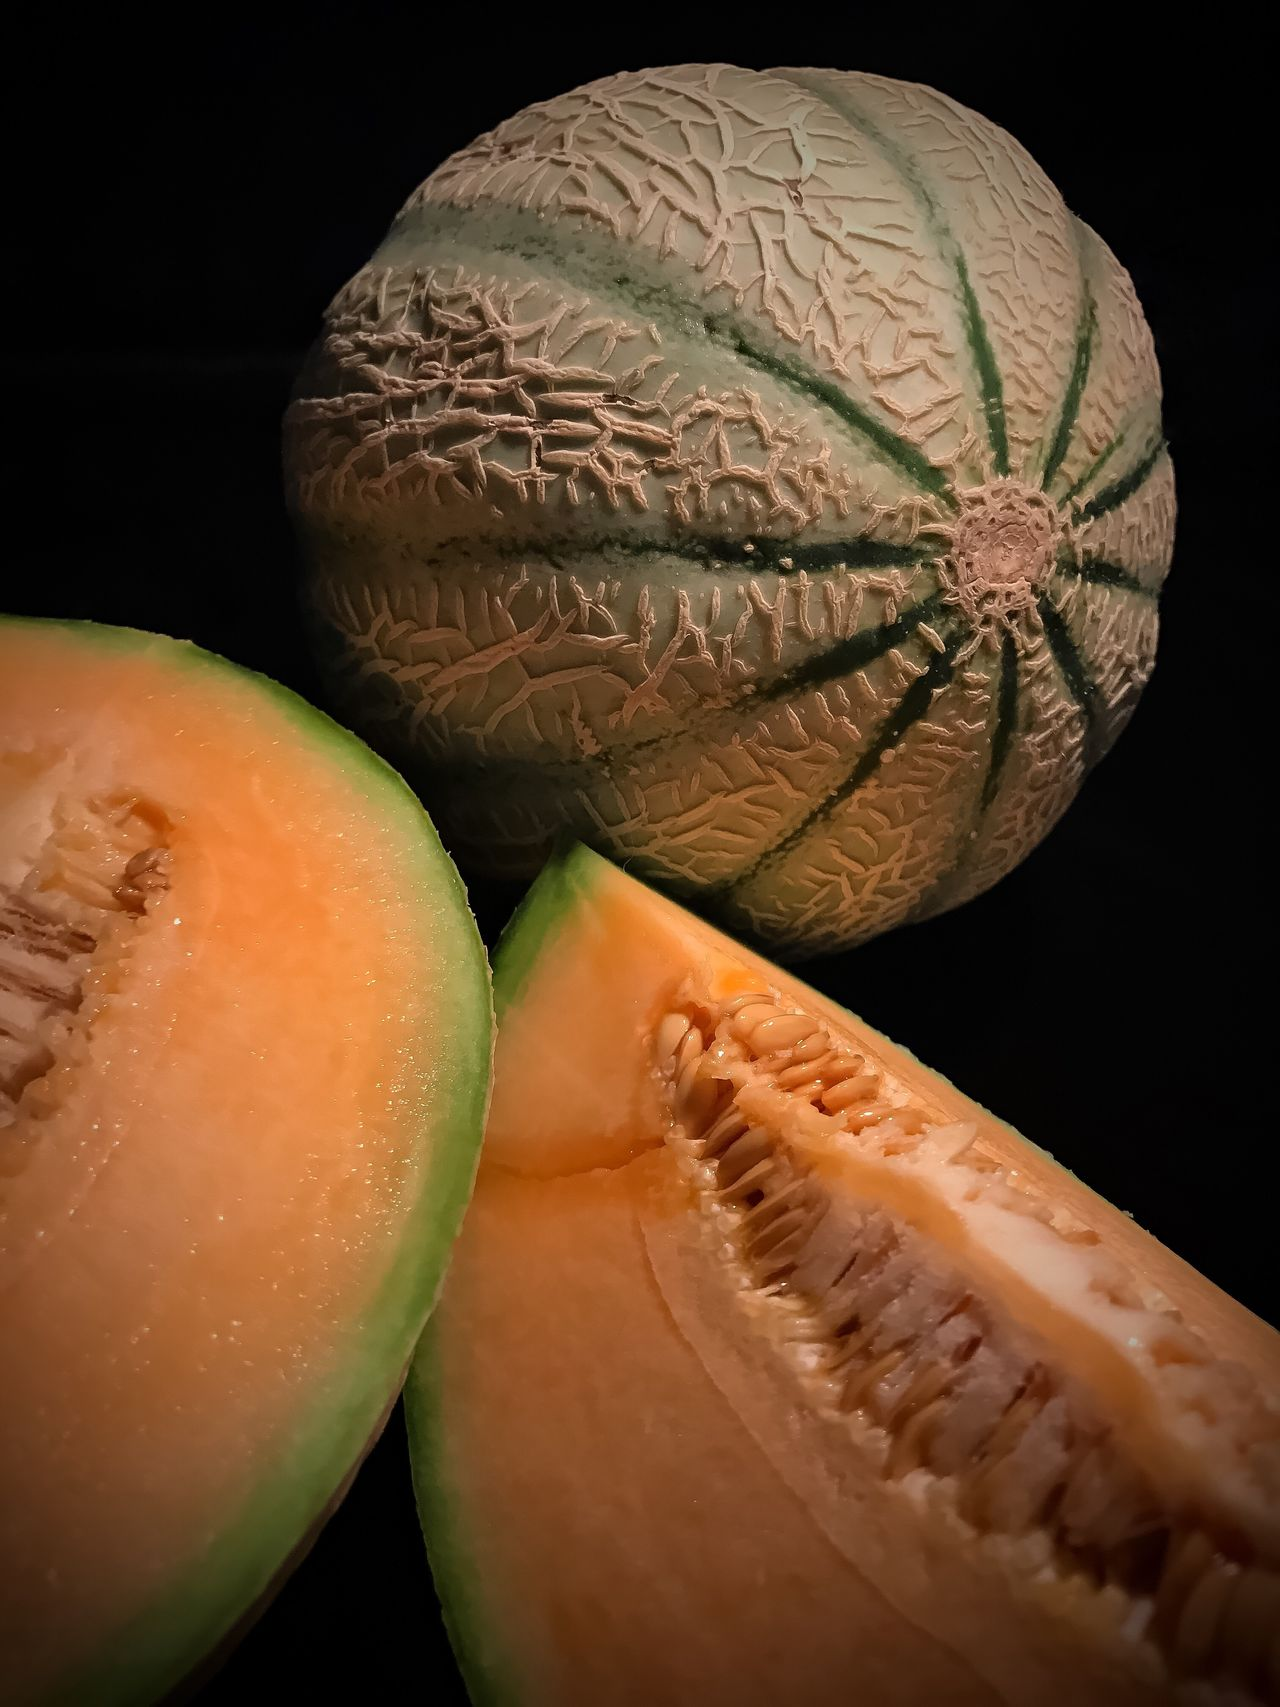 Food Food And Drink Freshness Healthy Eating Close-up No People Indoors  Black Background Cantaloupe Studio Shot Studio Studio Photography Melon Melons Cantaloupe Seeds